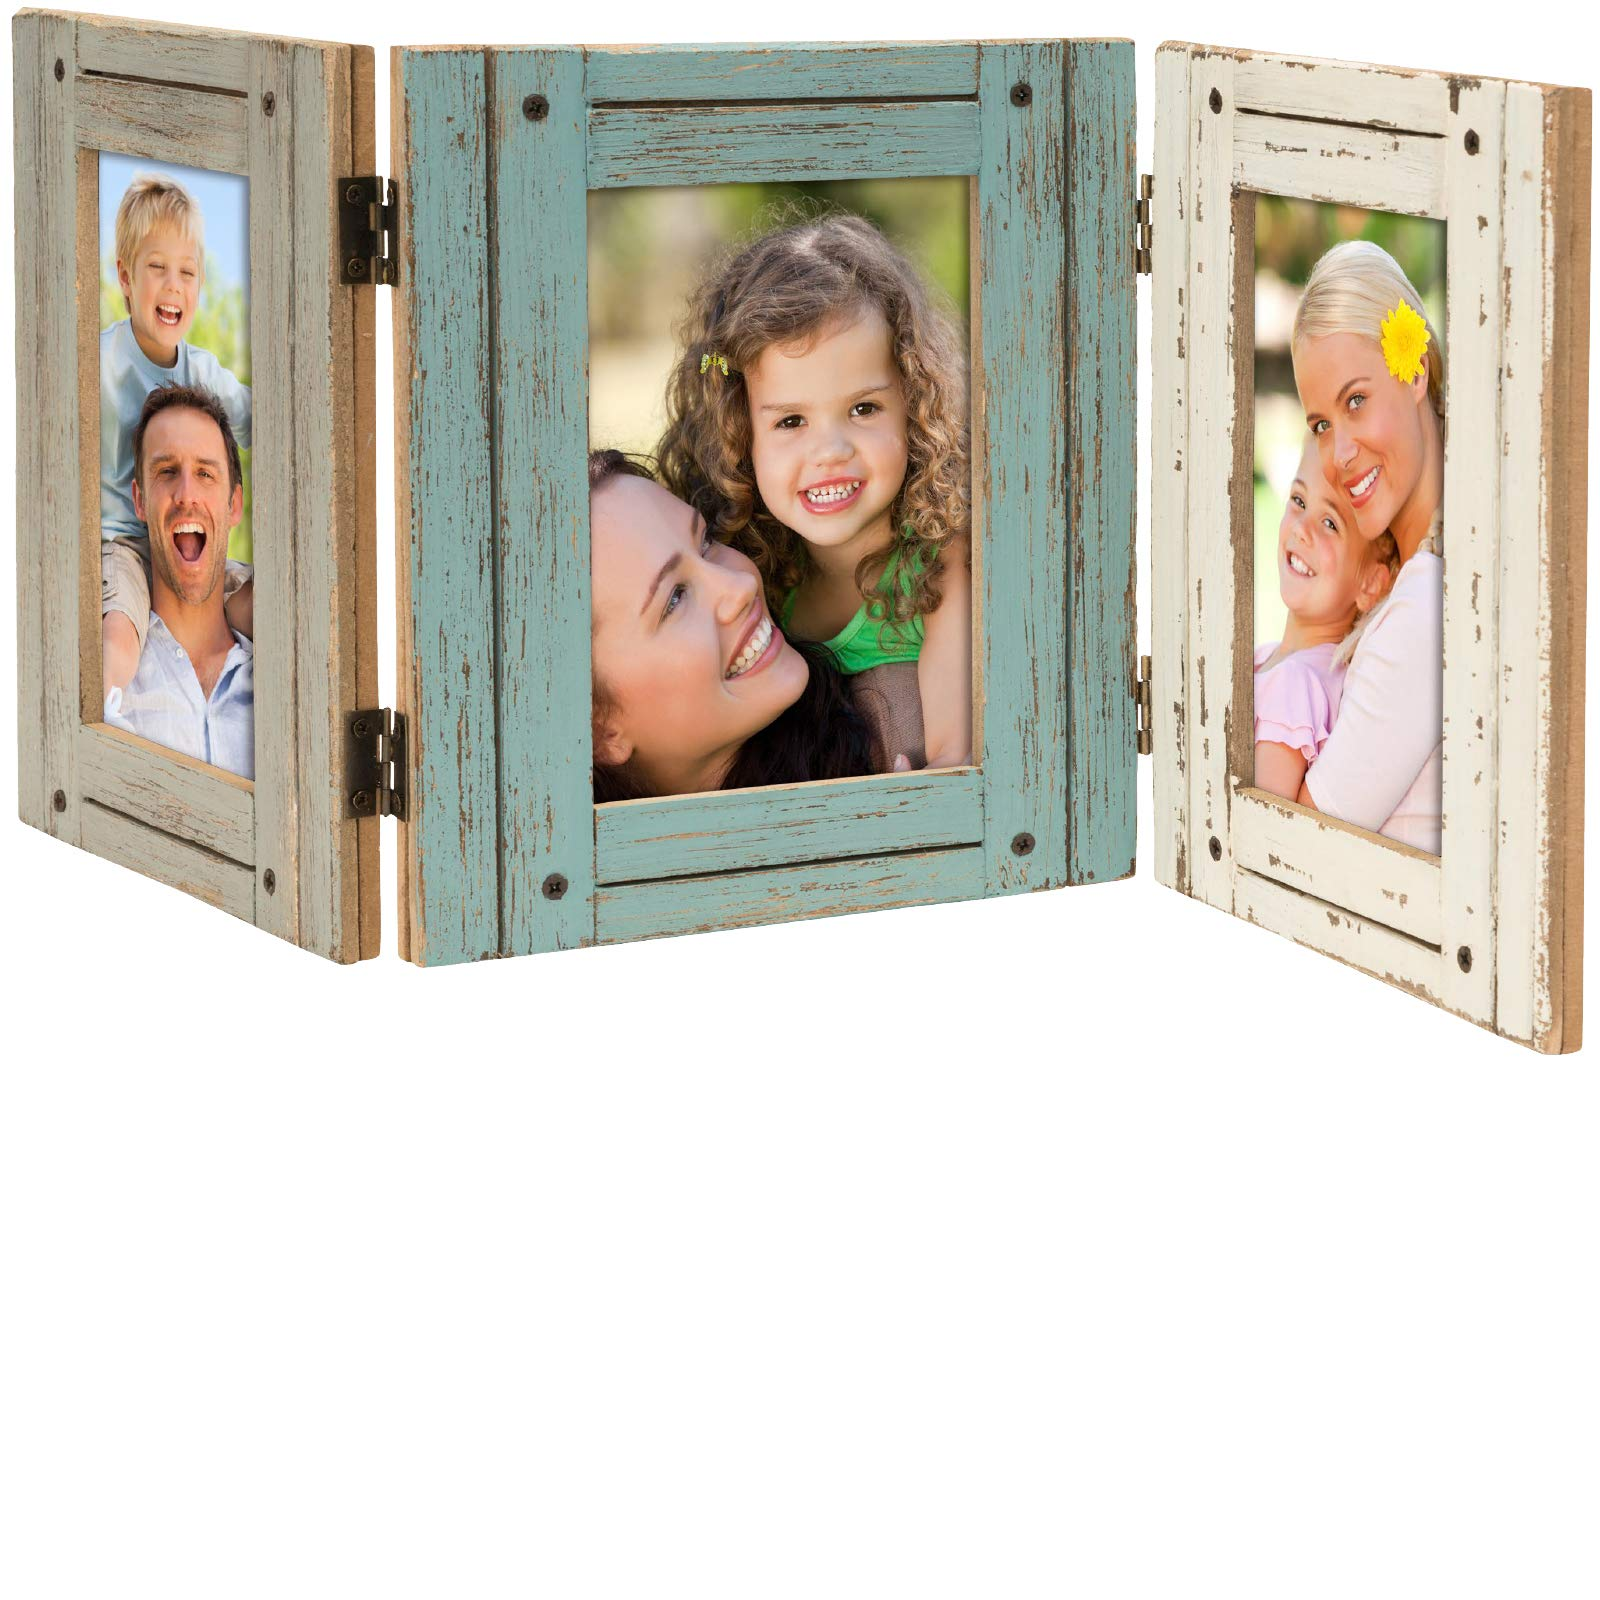 Hand Painted Rustic Three Picture Frame Made from Distressed Wood: Holds Three 4x6 Photos: Shabby Chic, Driftwood, Barnwood, Farmhouse, Reclaimed Wood Picture Frame. Displays on Tabletop or Shelf. by Excello Global Products